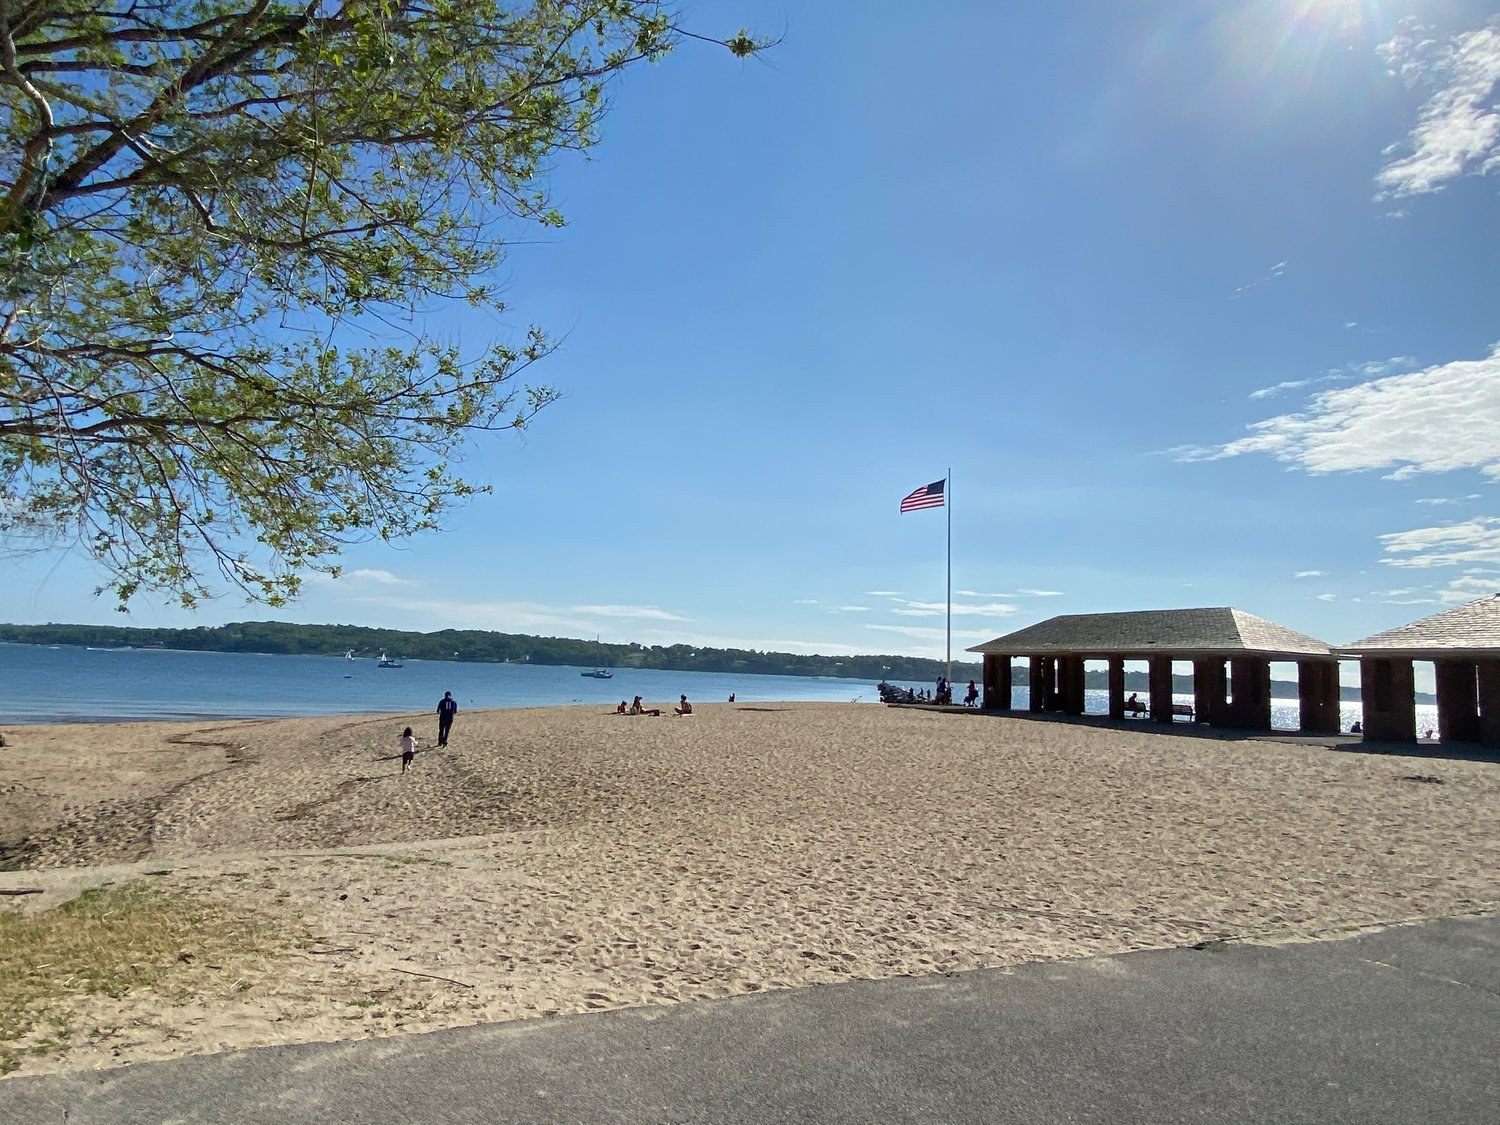 Morgan Park Beach opened for swimming over Memorial Day weekend.